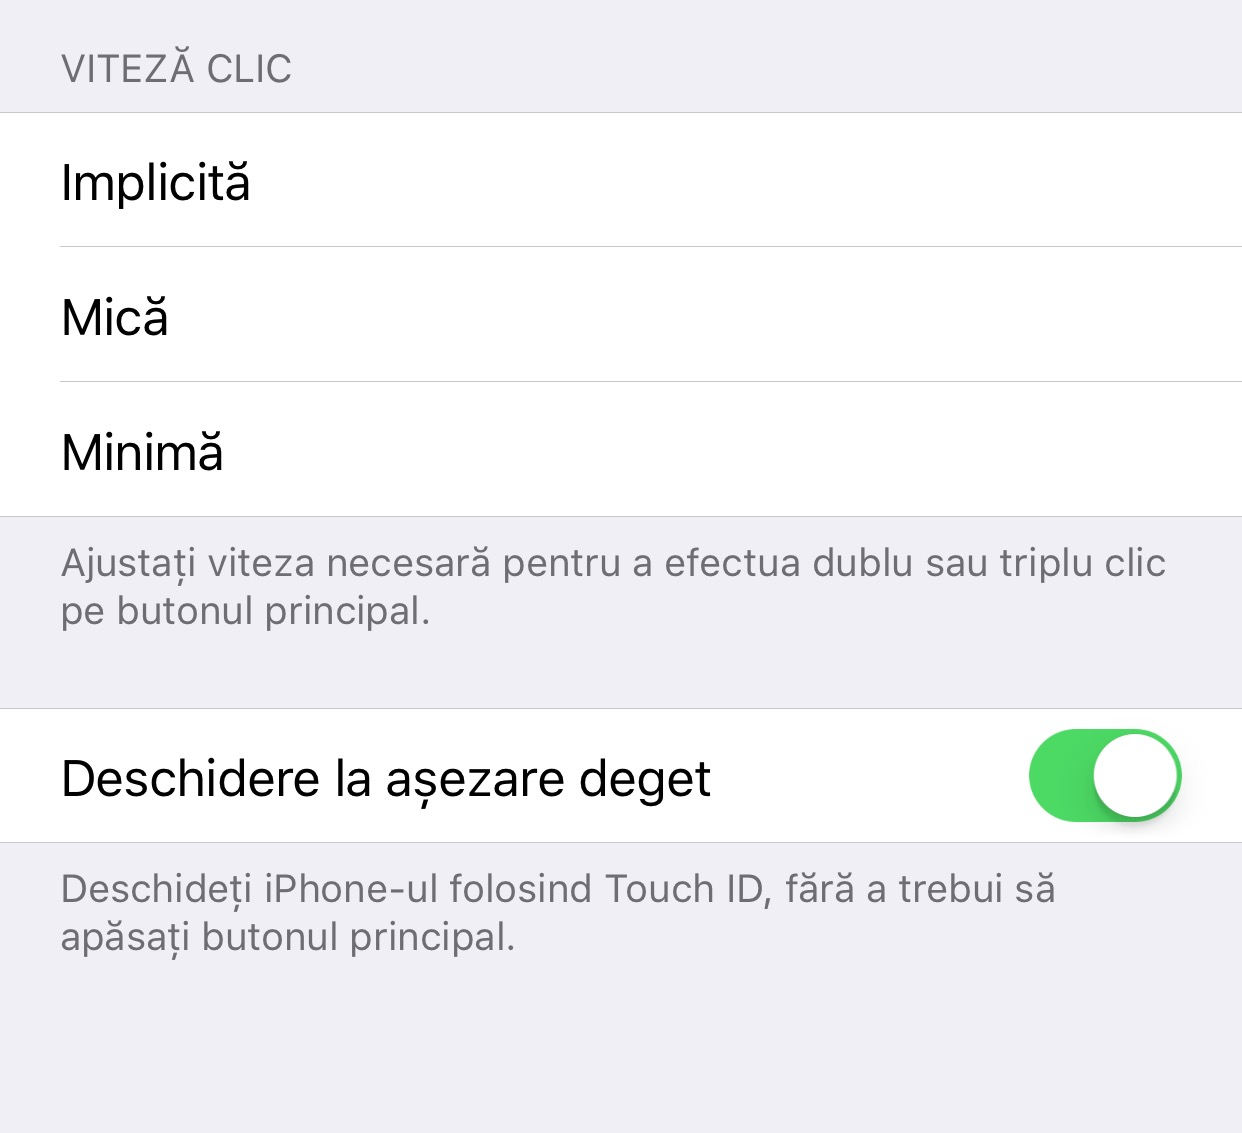 ios 10 rest finger to unlock, Deschidere la asezare deget